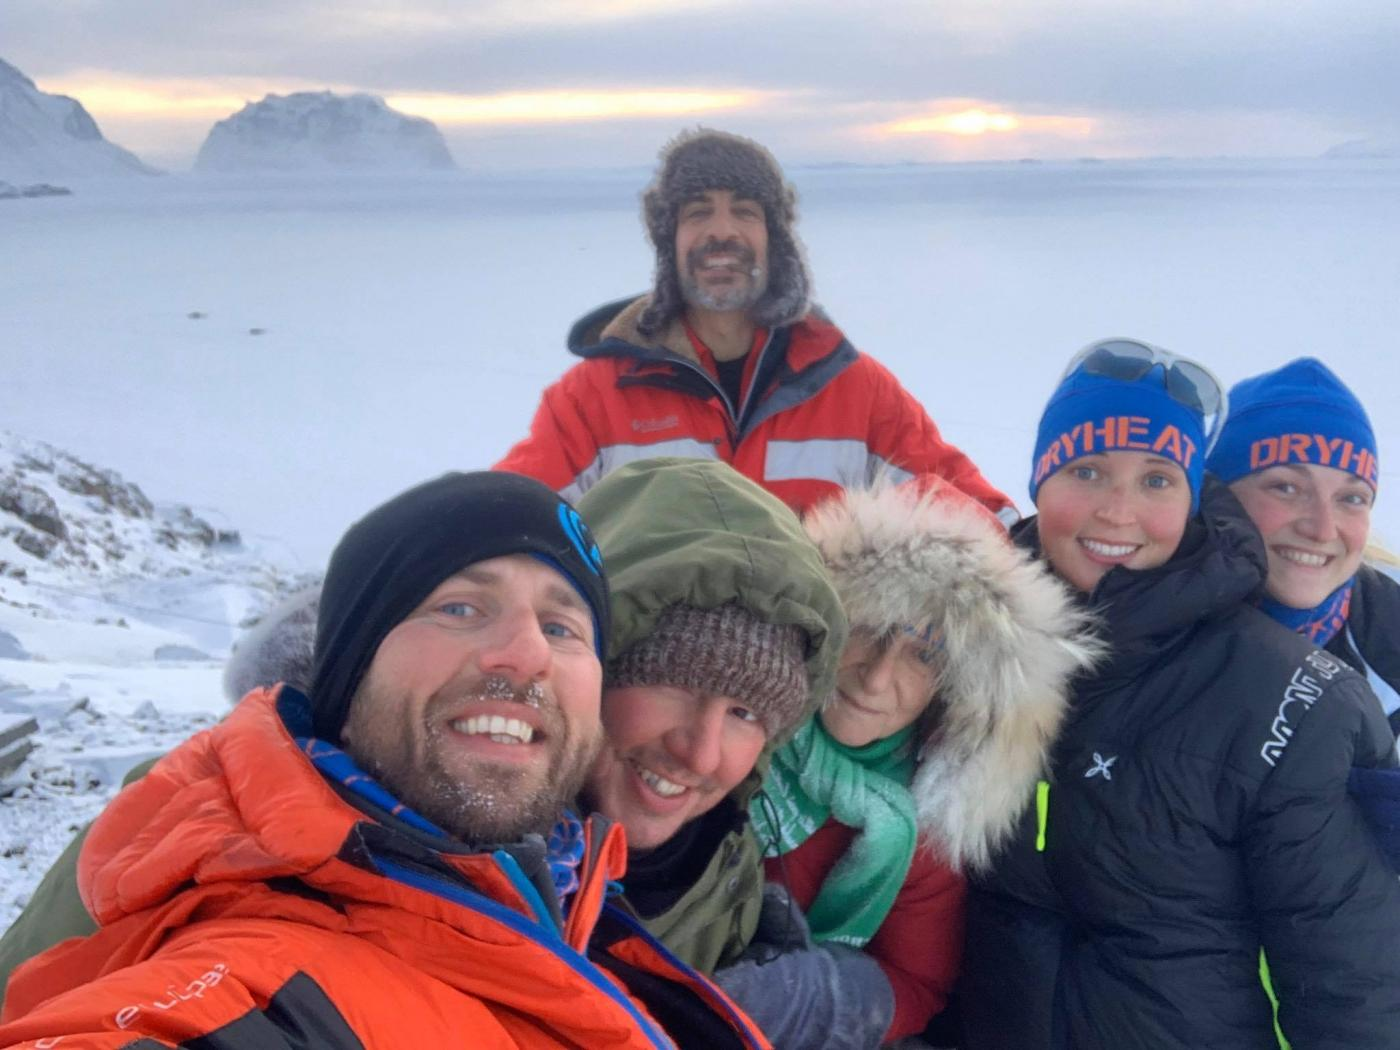 Tour group taking a selfie together. Photo by Greenland Fiord Tours